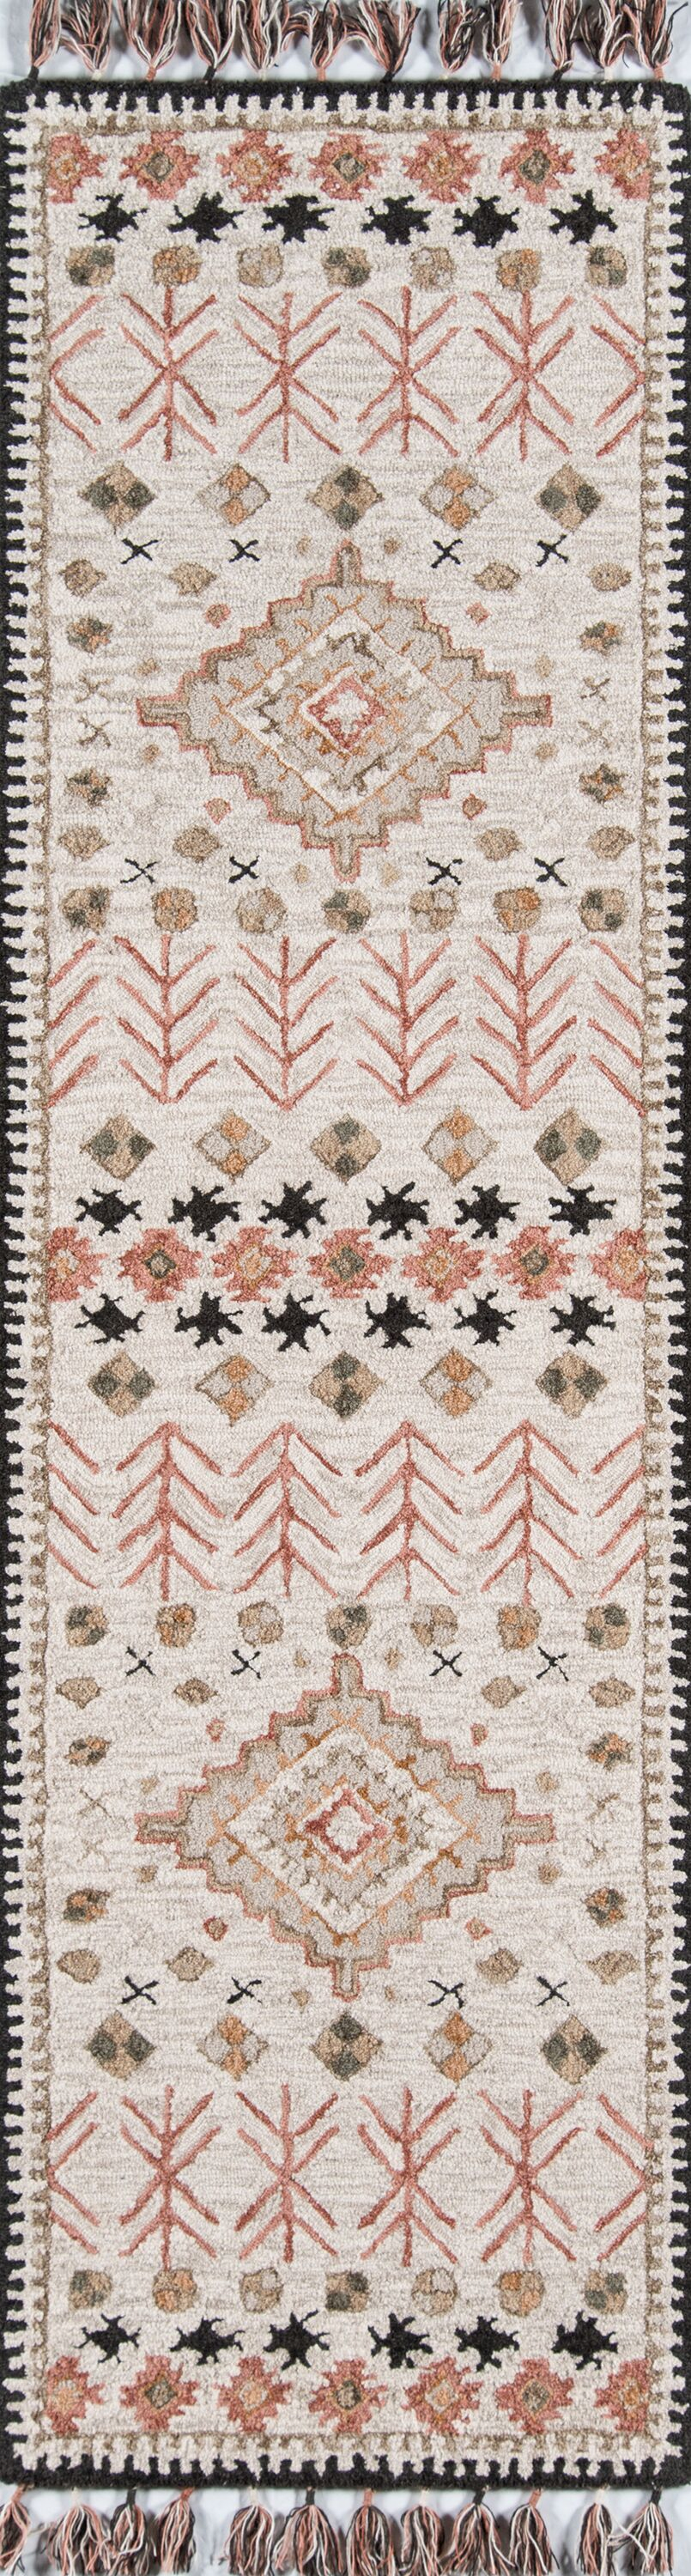 House Hand-Tufted Wool Pink/Beige Area Rug Rug Size: Runner 2'3